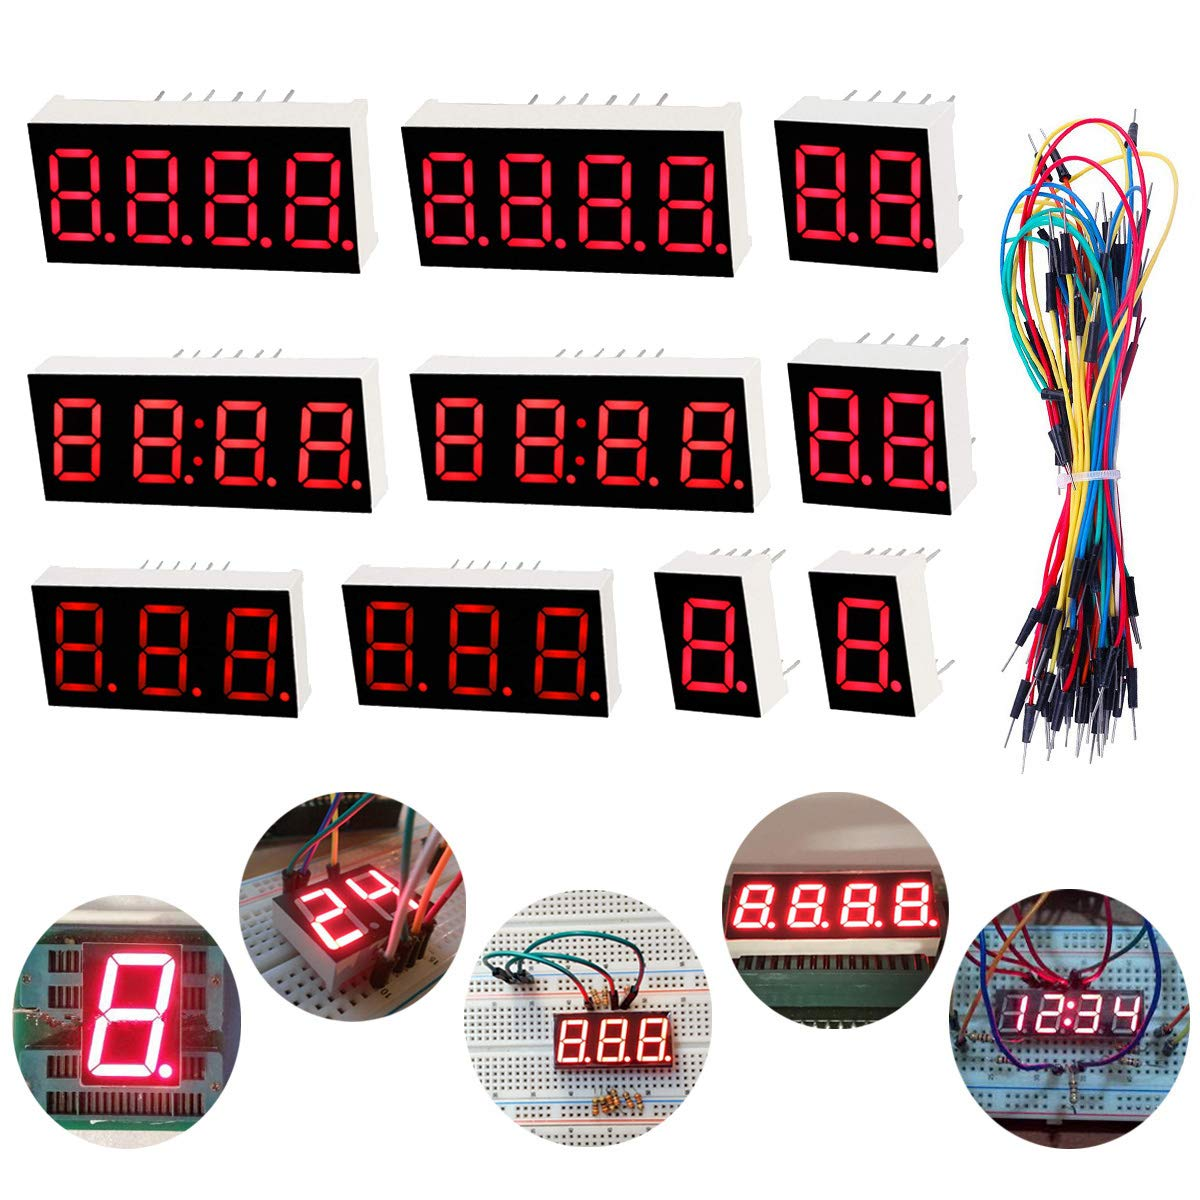 Jump Wire Youmile 10PCS LED Display 7 Segment 1Bit 2Bit 3Bit 4Bit Common Cathode 10PIN Red Light For Arduino,DIY